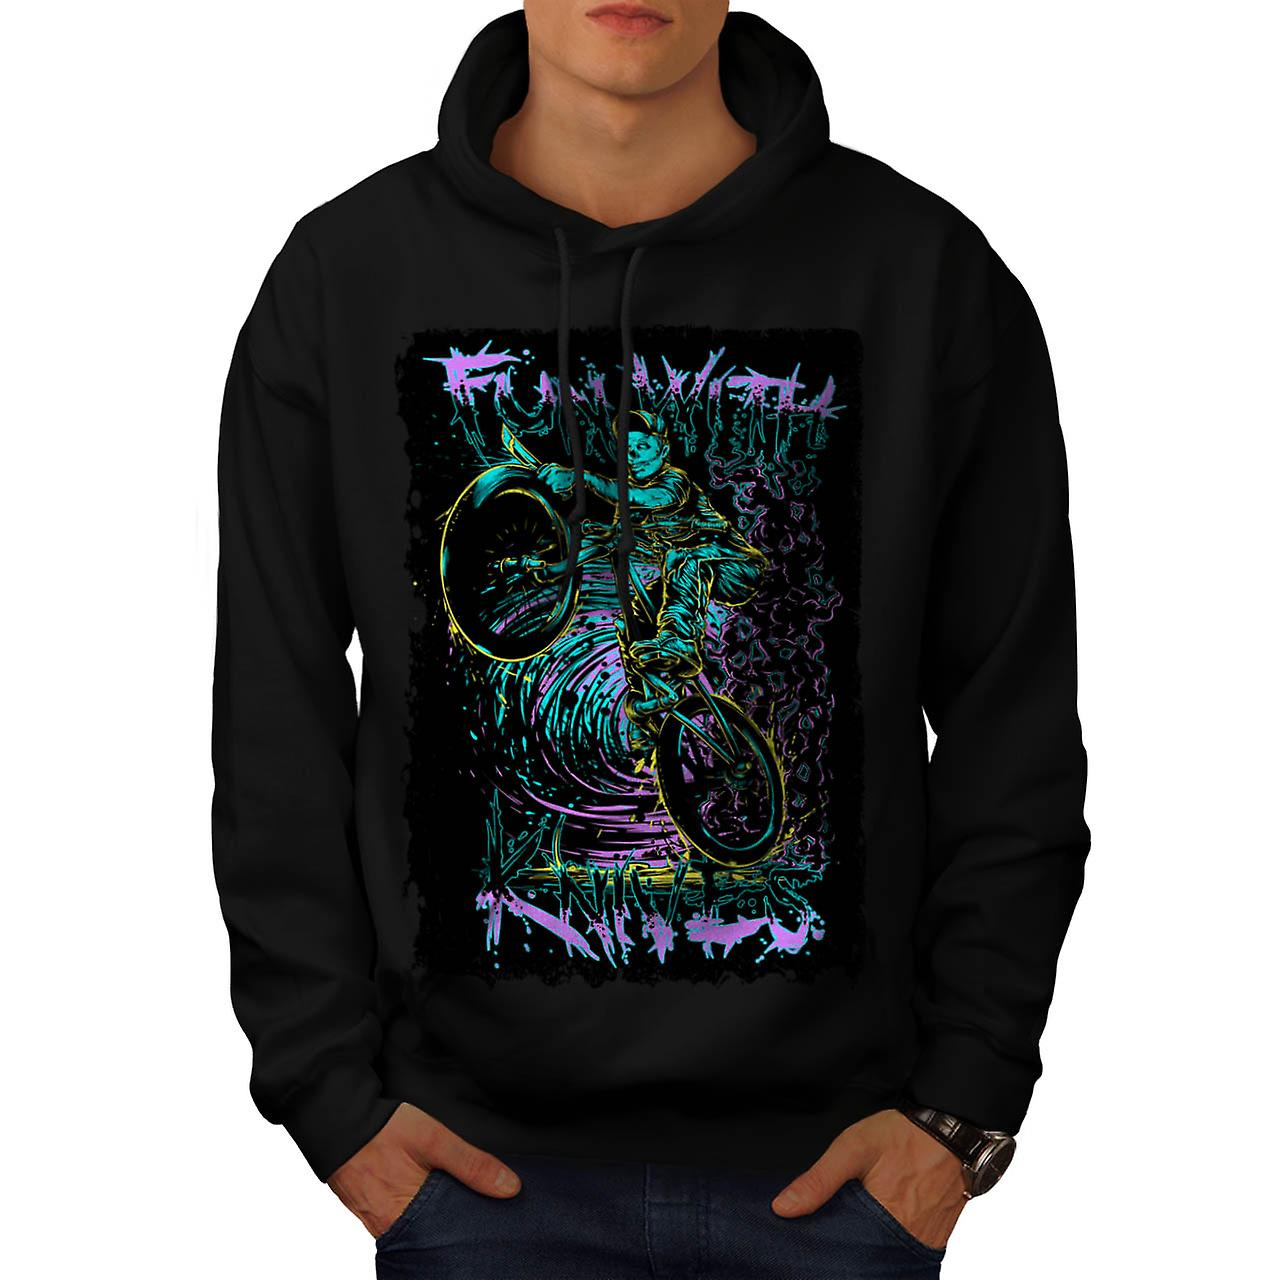 Fun With Knives Rider Zombie Bike Men Black Hoodie | Wellcoda